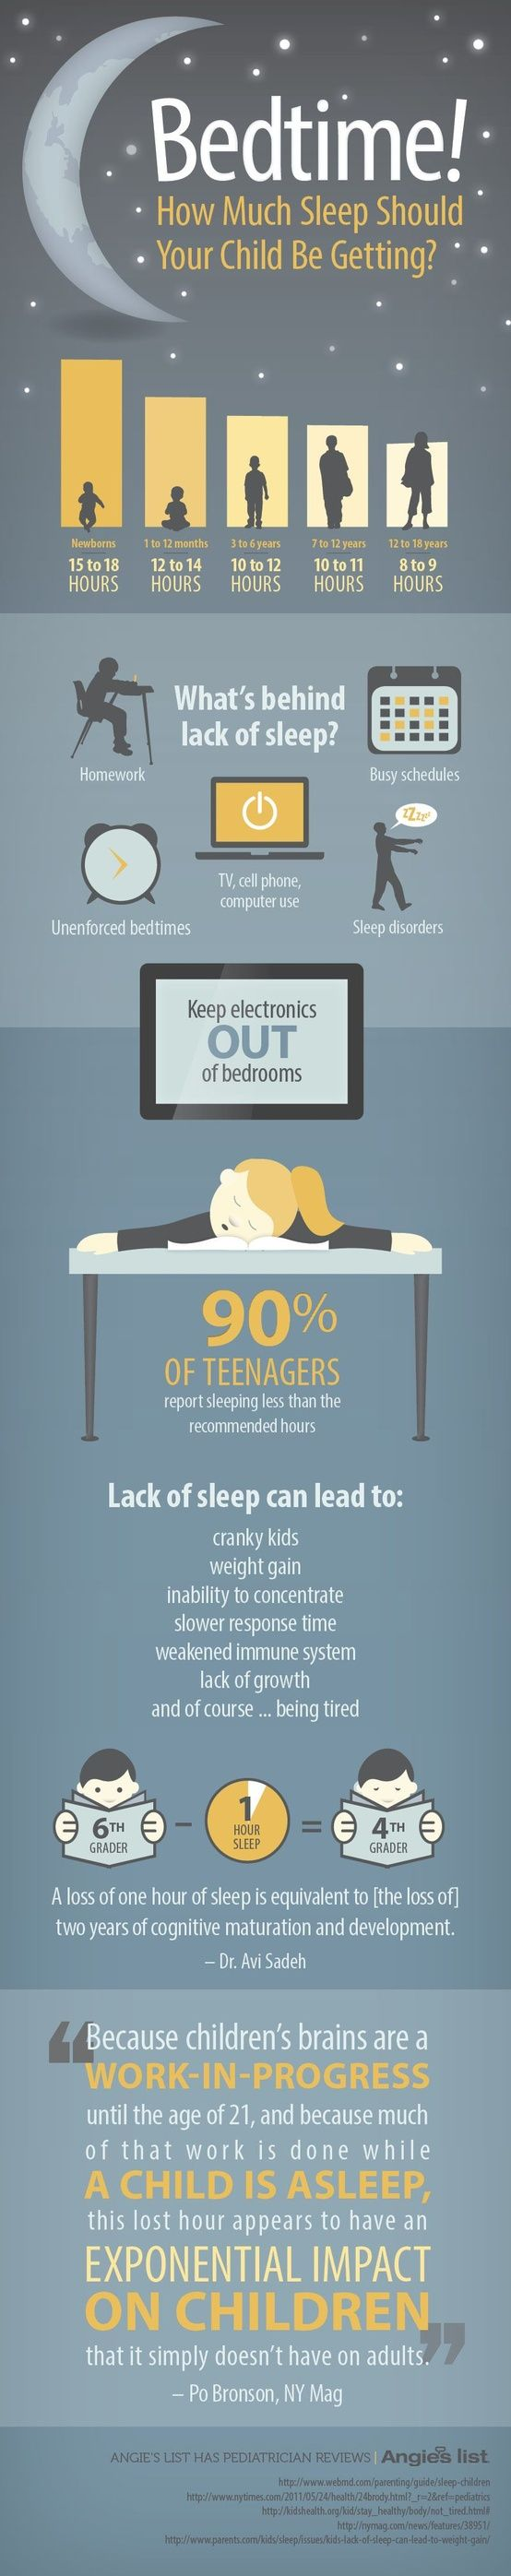 Find This Pin And More On Useful Classroom Images How Much Sleep Does A Kid